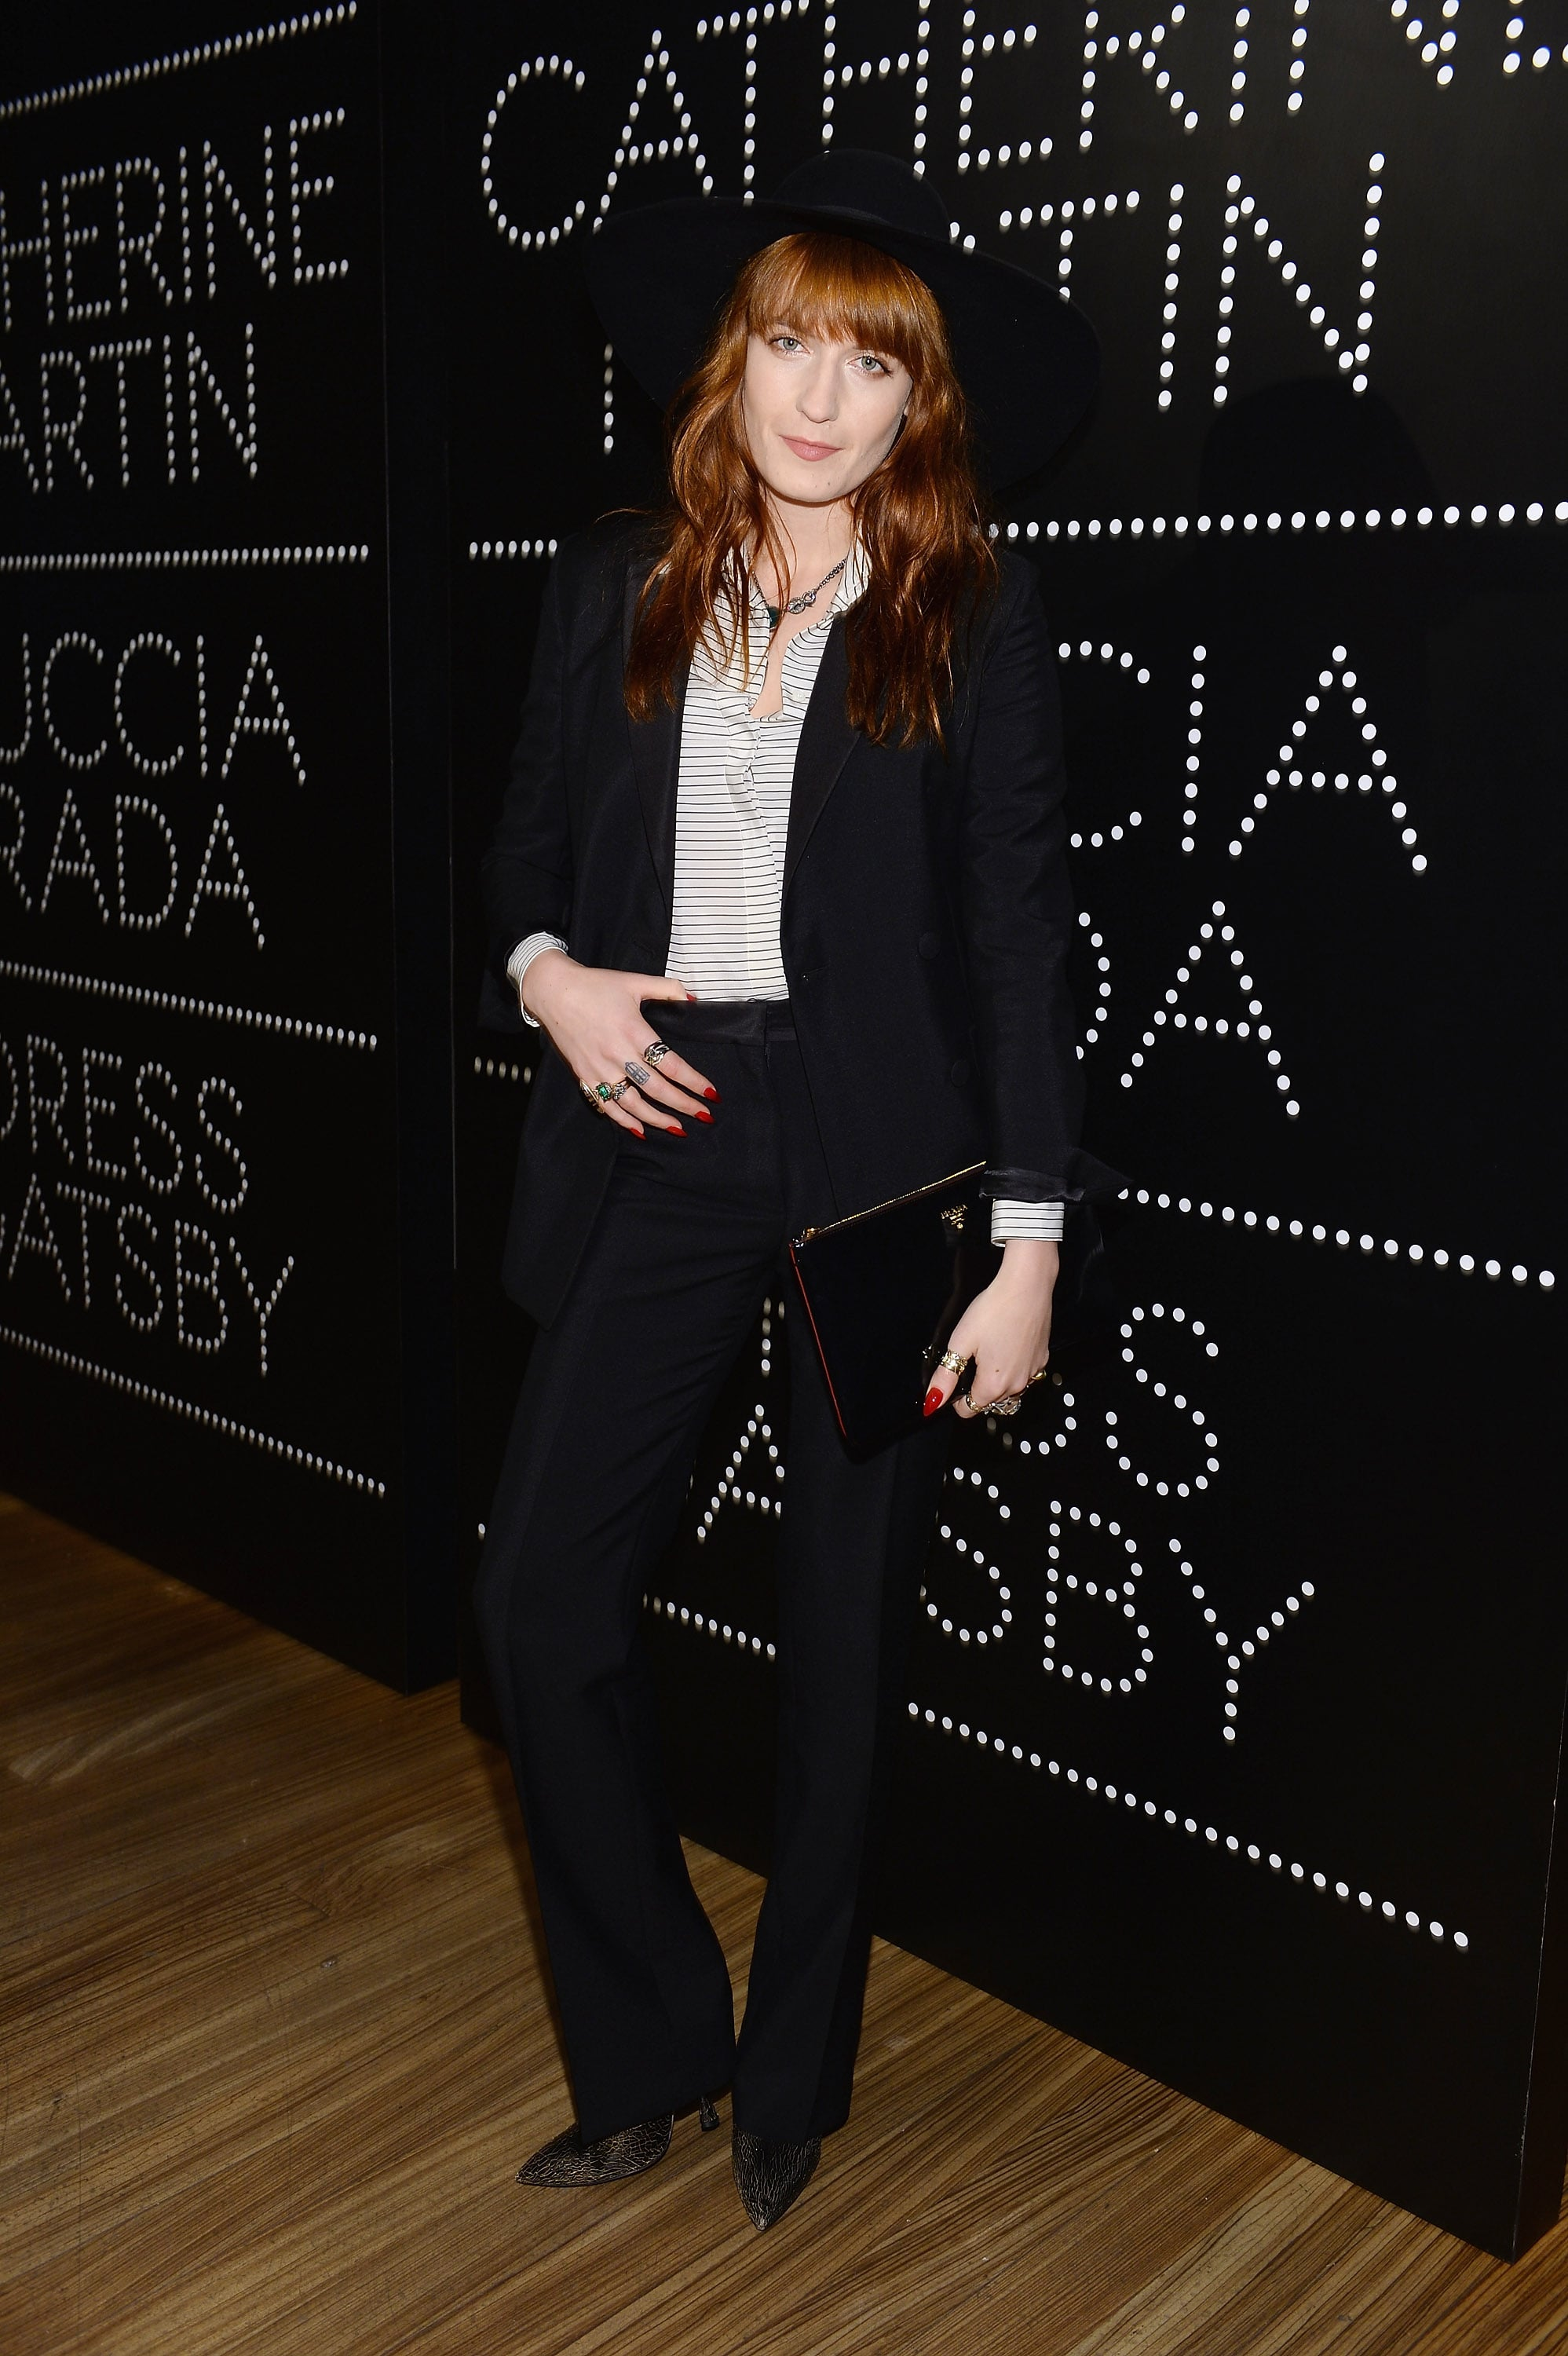 Florence Welch showed off her cool-girl status in black separates made up of a Prada mohair tuxedo, black and white striped silk shirt, and black spazzolato clutch, all by Prada. Black crackled pumps by Miu Miu completed her look at the Prada and The Great Gatsby soiree.